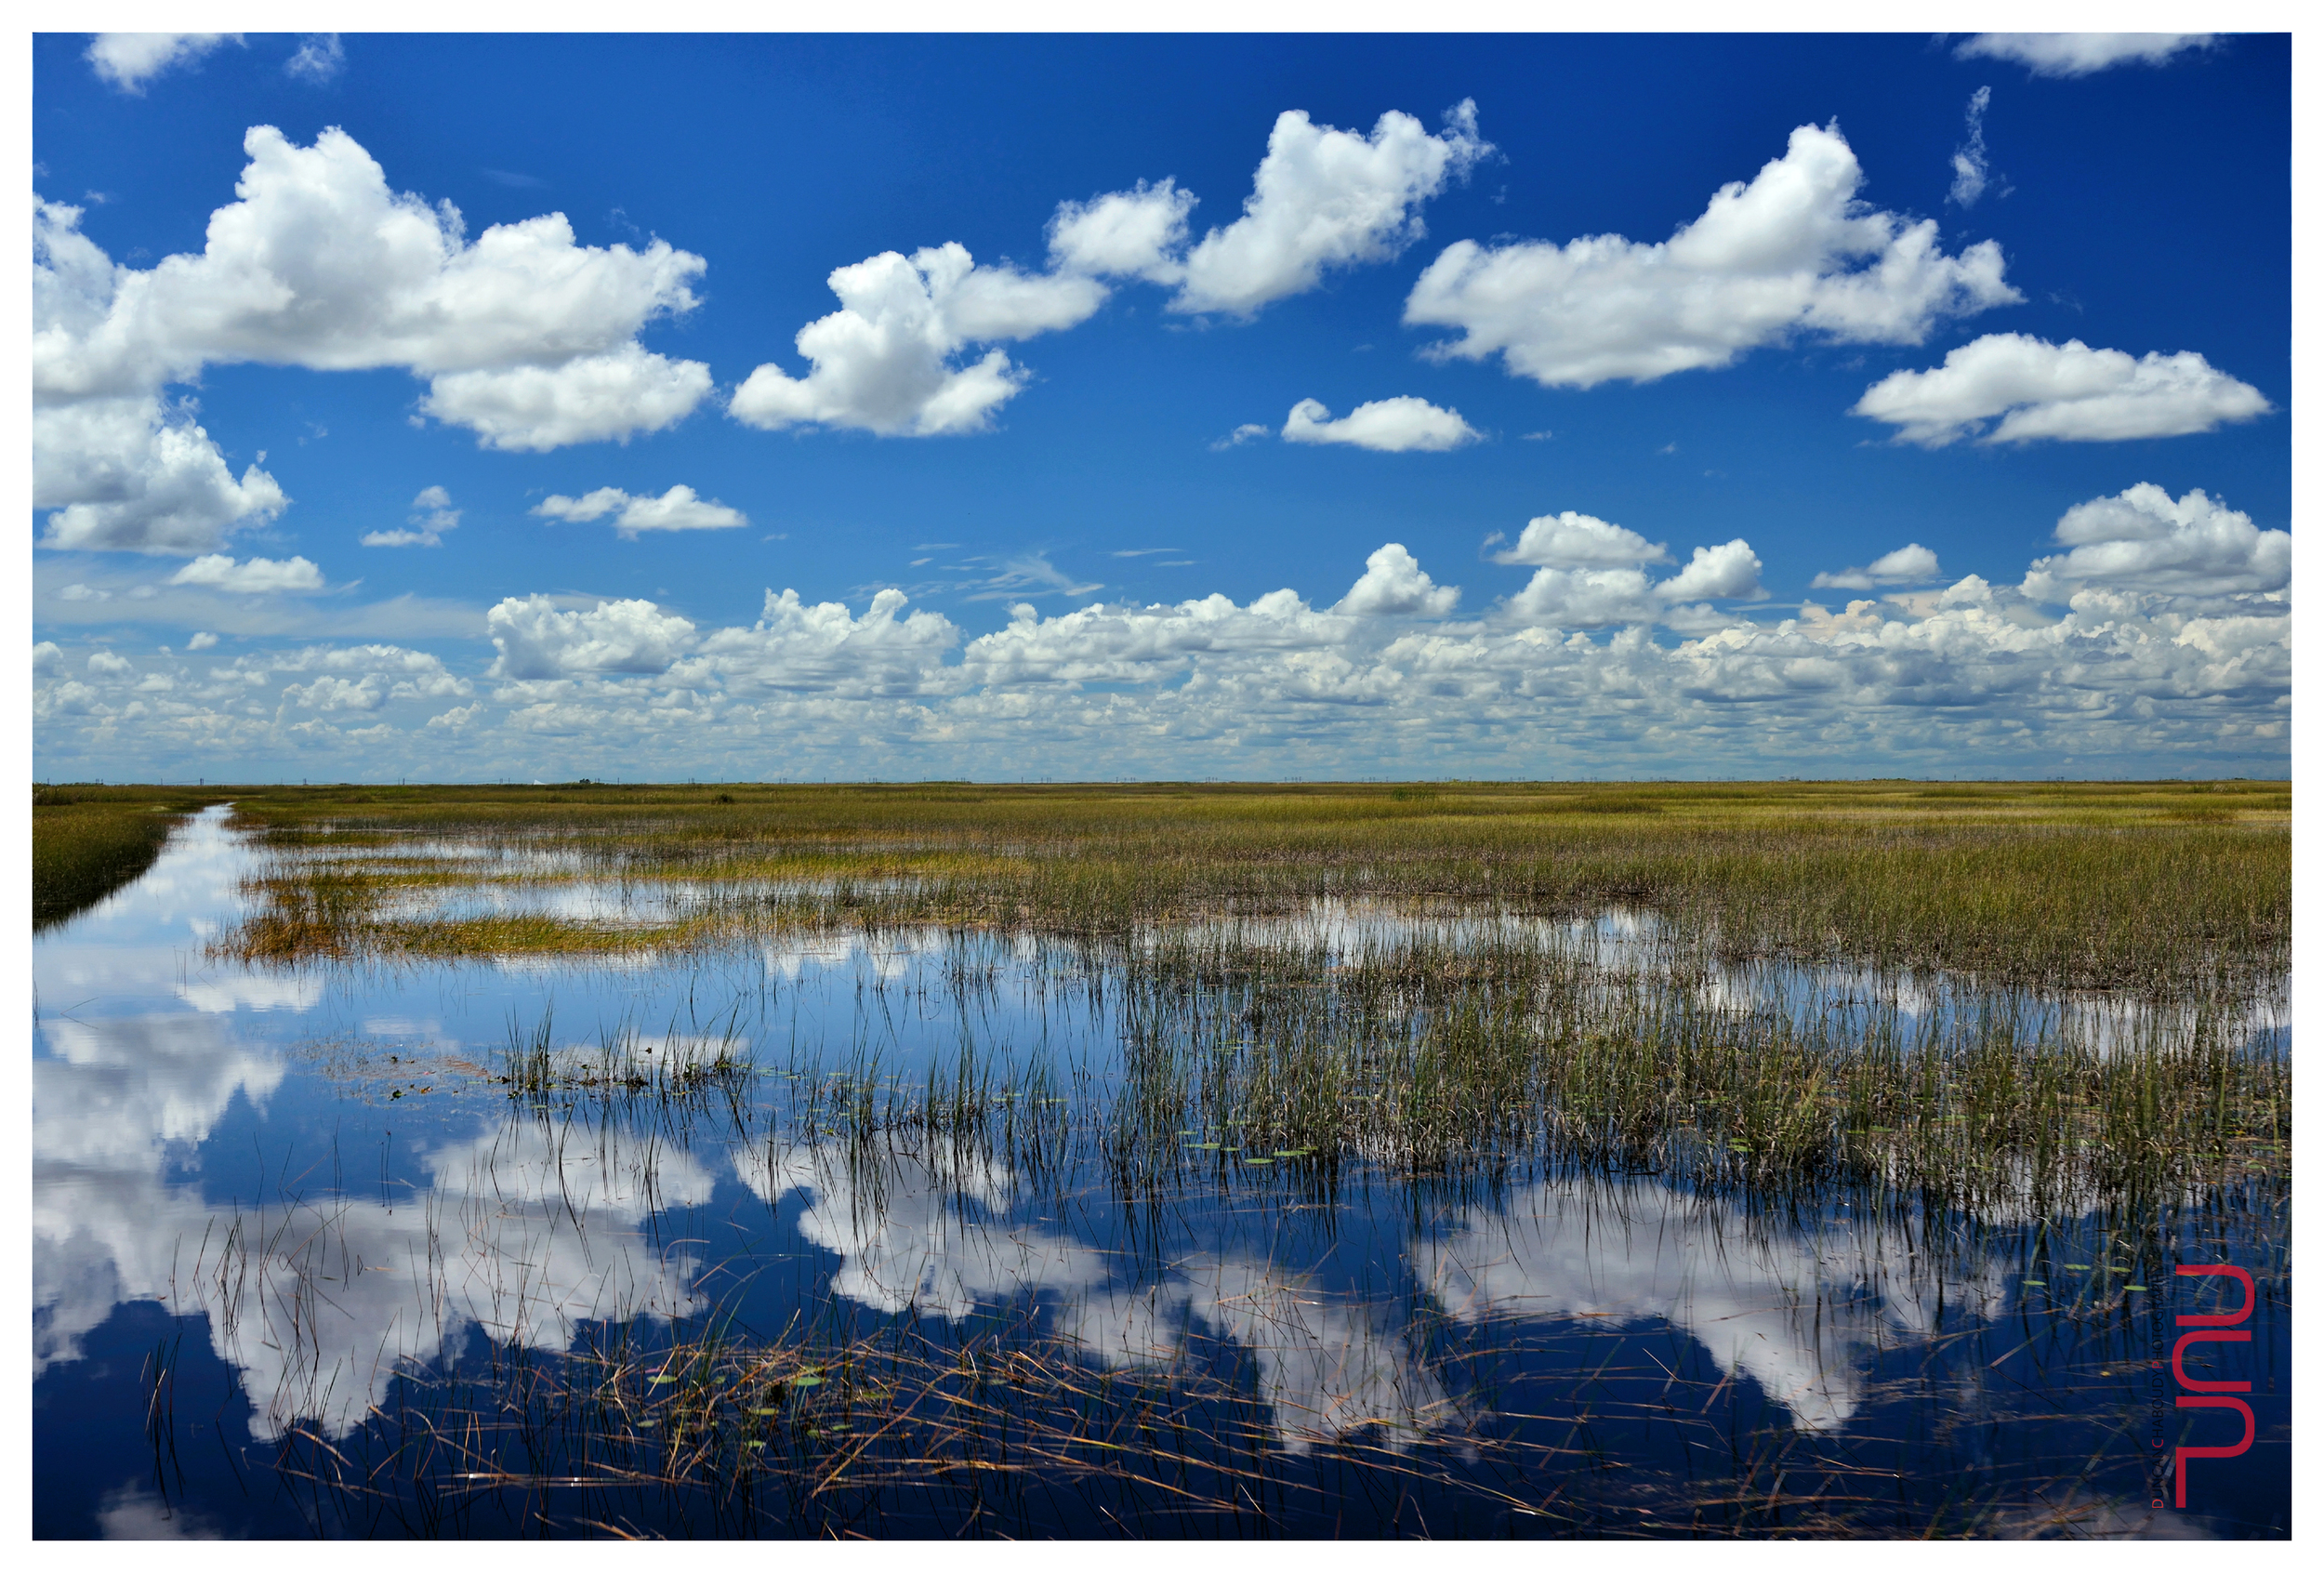 Peculiar reflection in the Northern Everglades, Florida